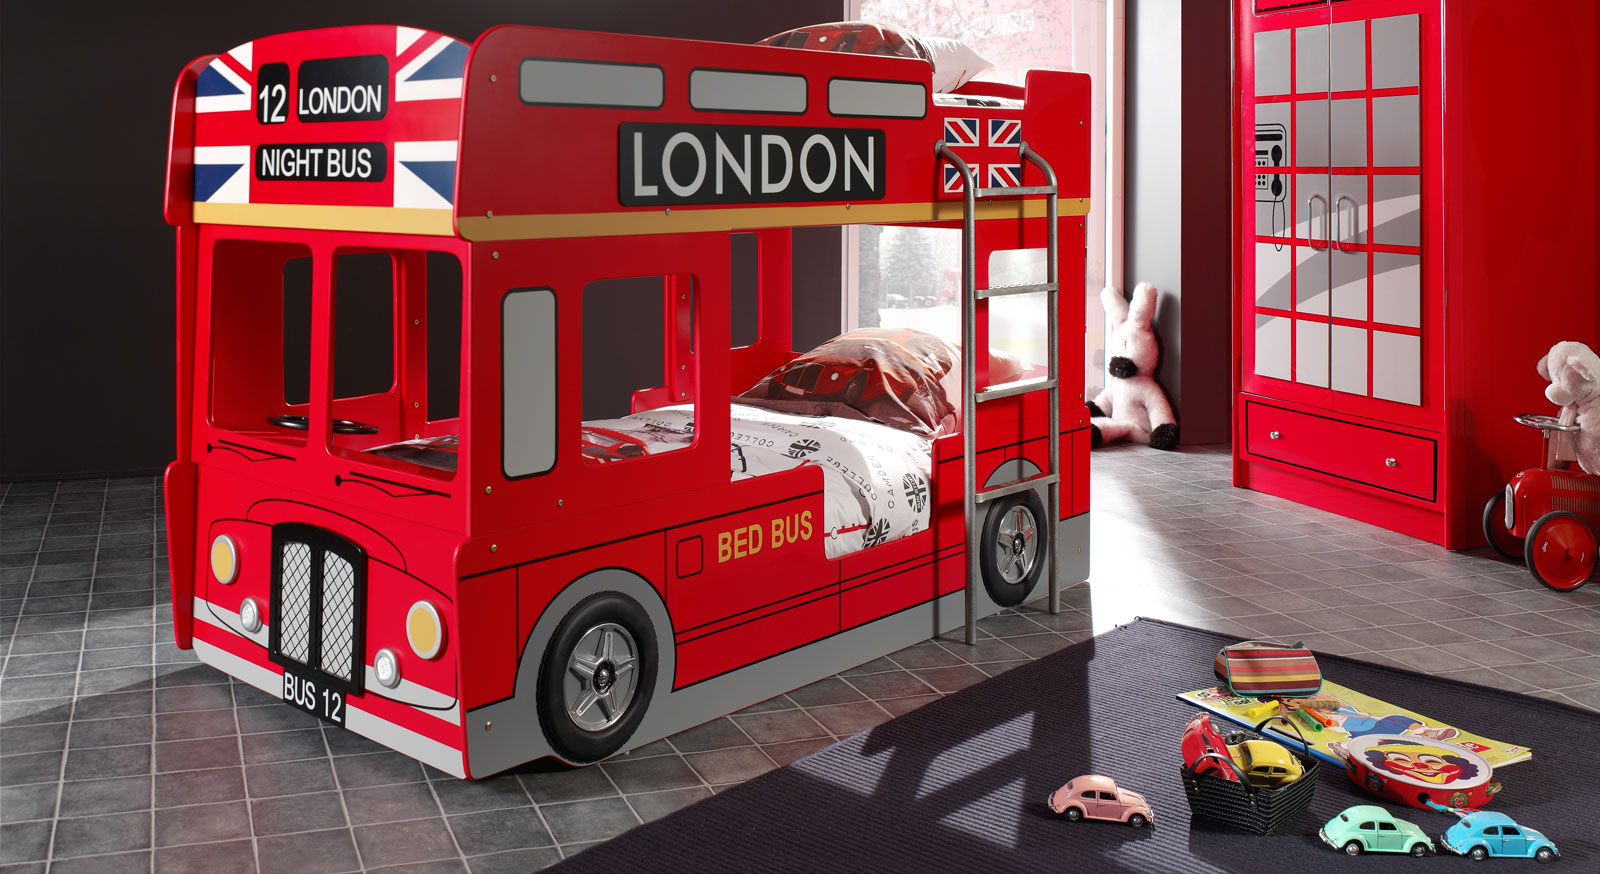 Bus Bett Etagenbett : Auto etagenbett in rot als london doppeldecker paddington